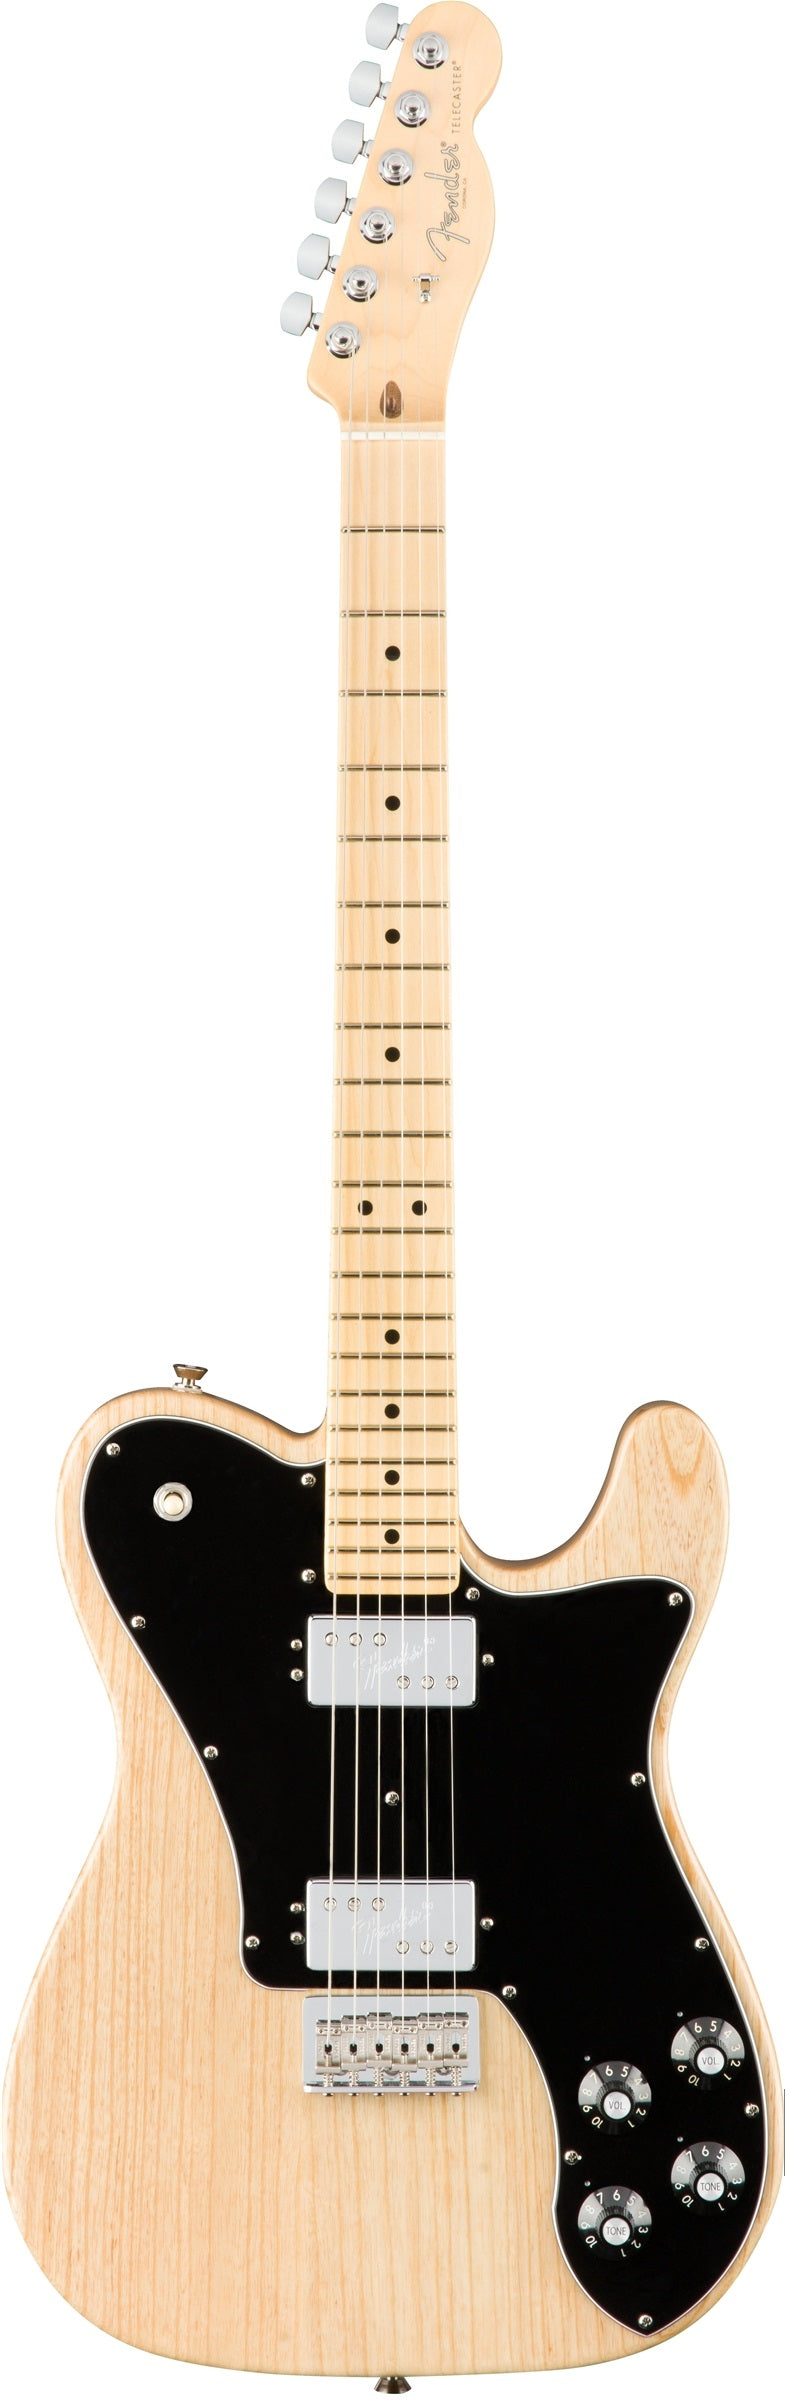 Fender American Professional Telecaster Deluxe Shawbucker Electric Guitar - Maple Fingerboard